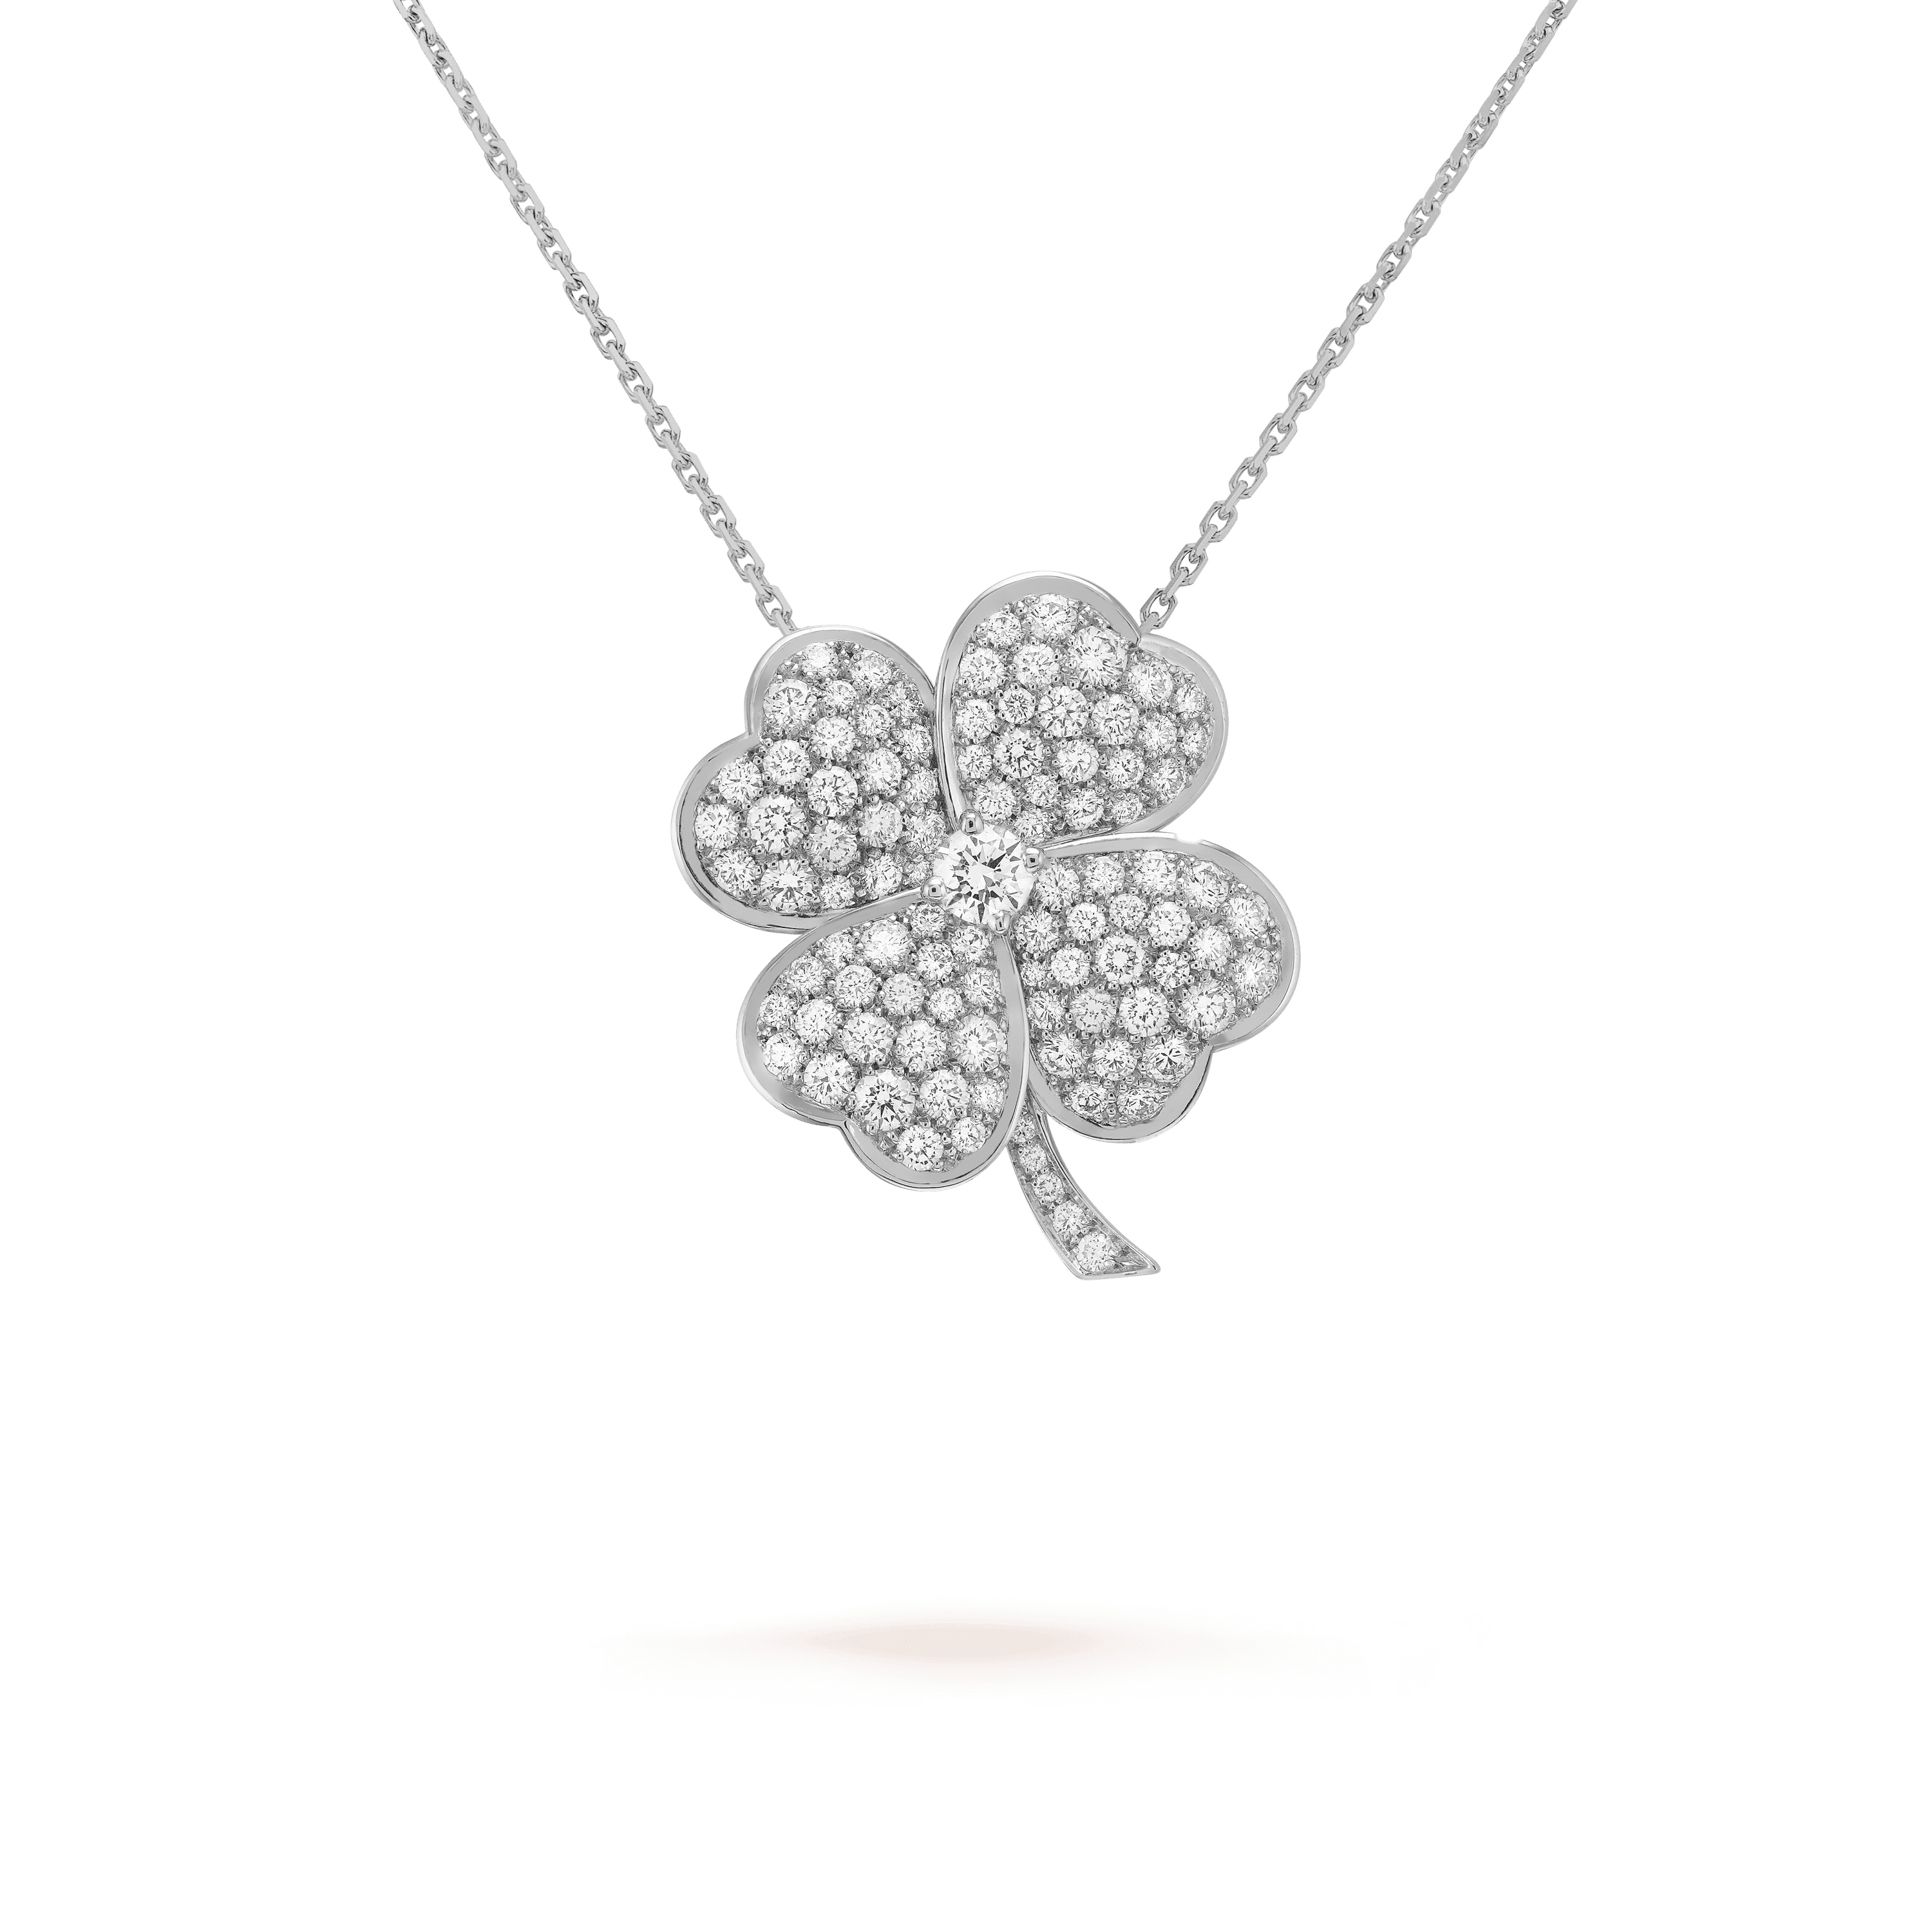 Cosmos clip pendant, large model, - Detail View - VCARO68M00 - Van Cleef & Arpels